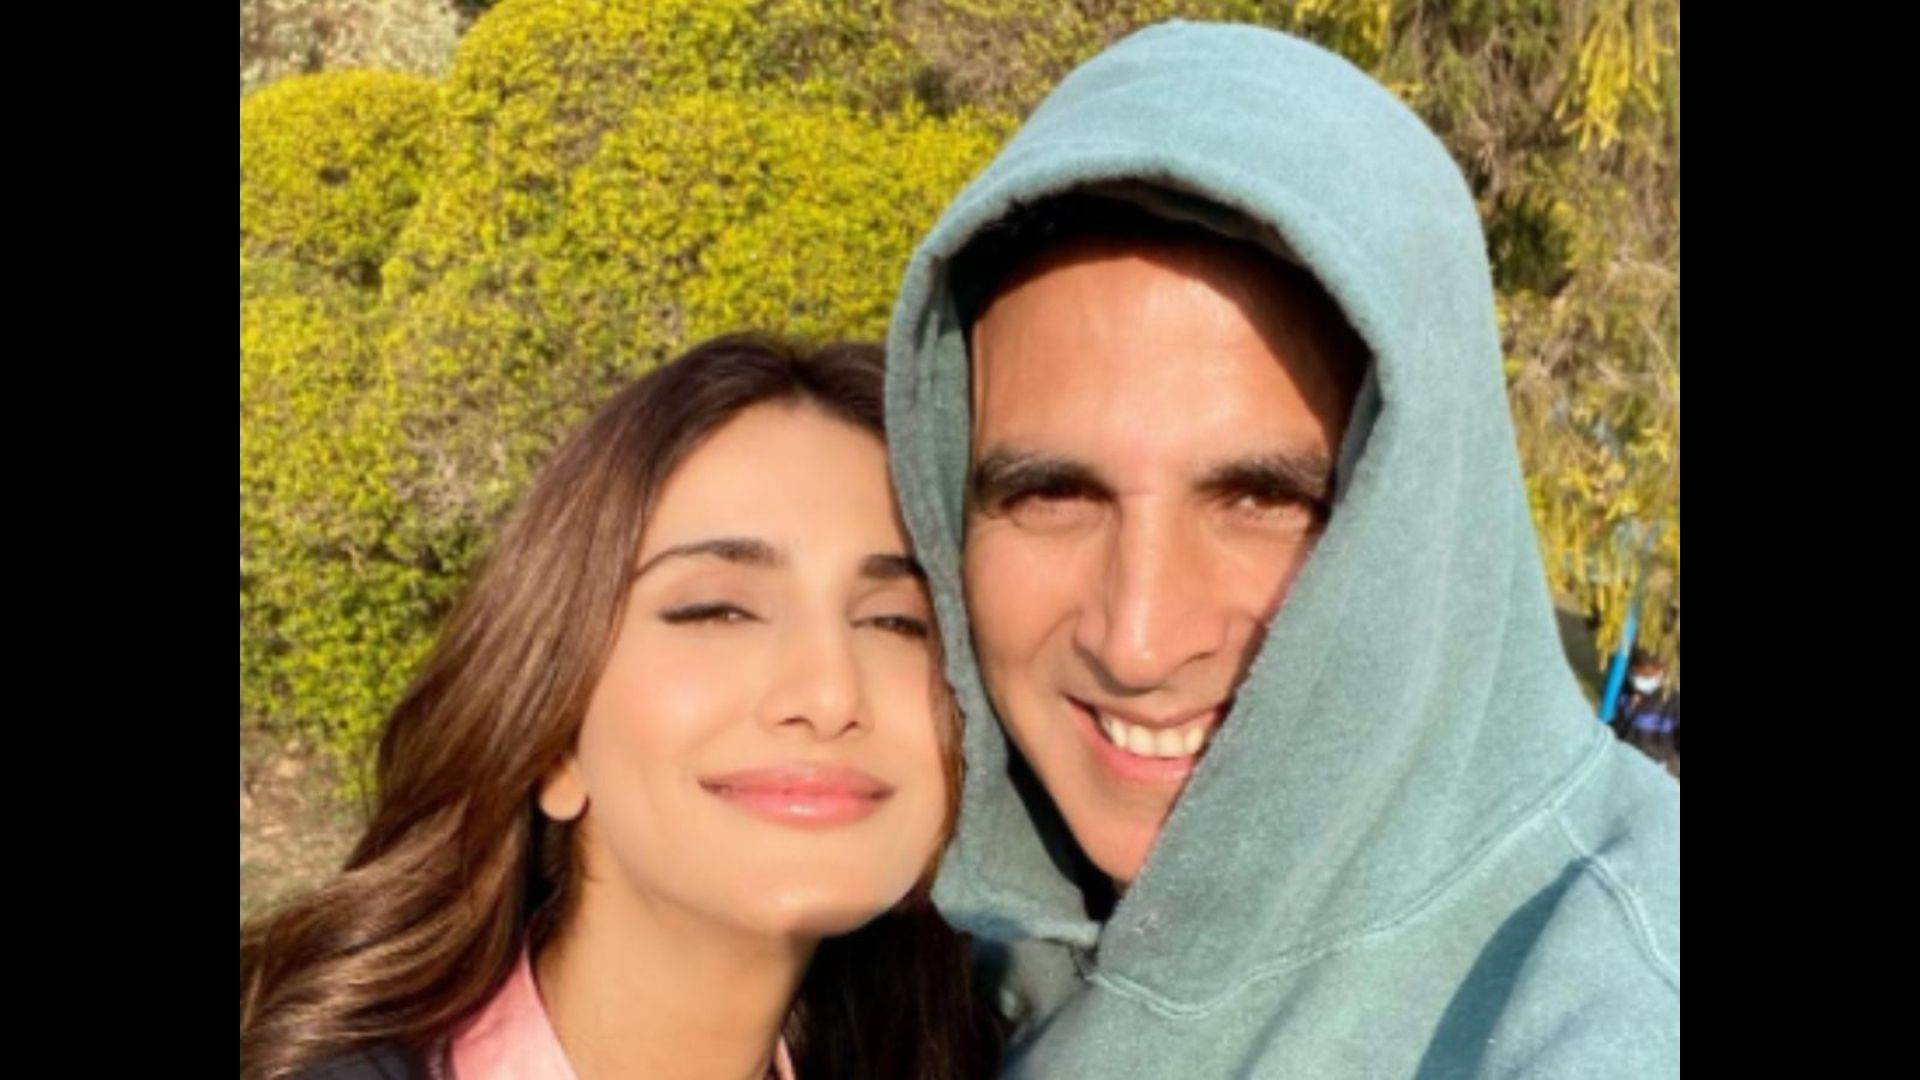 Akshay Kumar Turns Photographer For Bell Bottom Co-star Vaani Kapoor As They Vibe On The Sets; Actress Shares BTS Pics